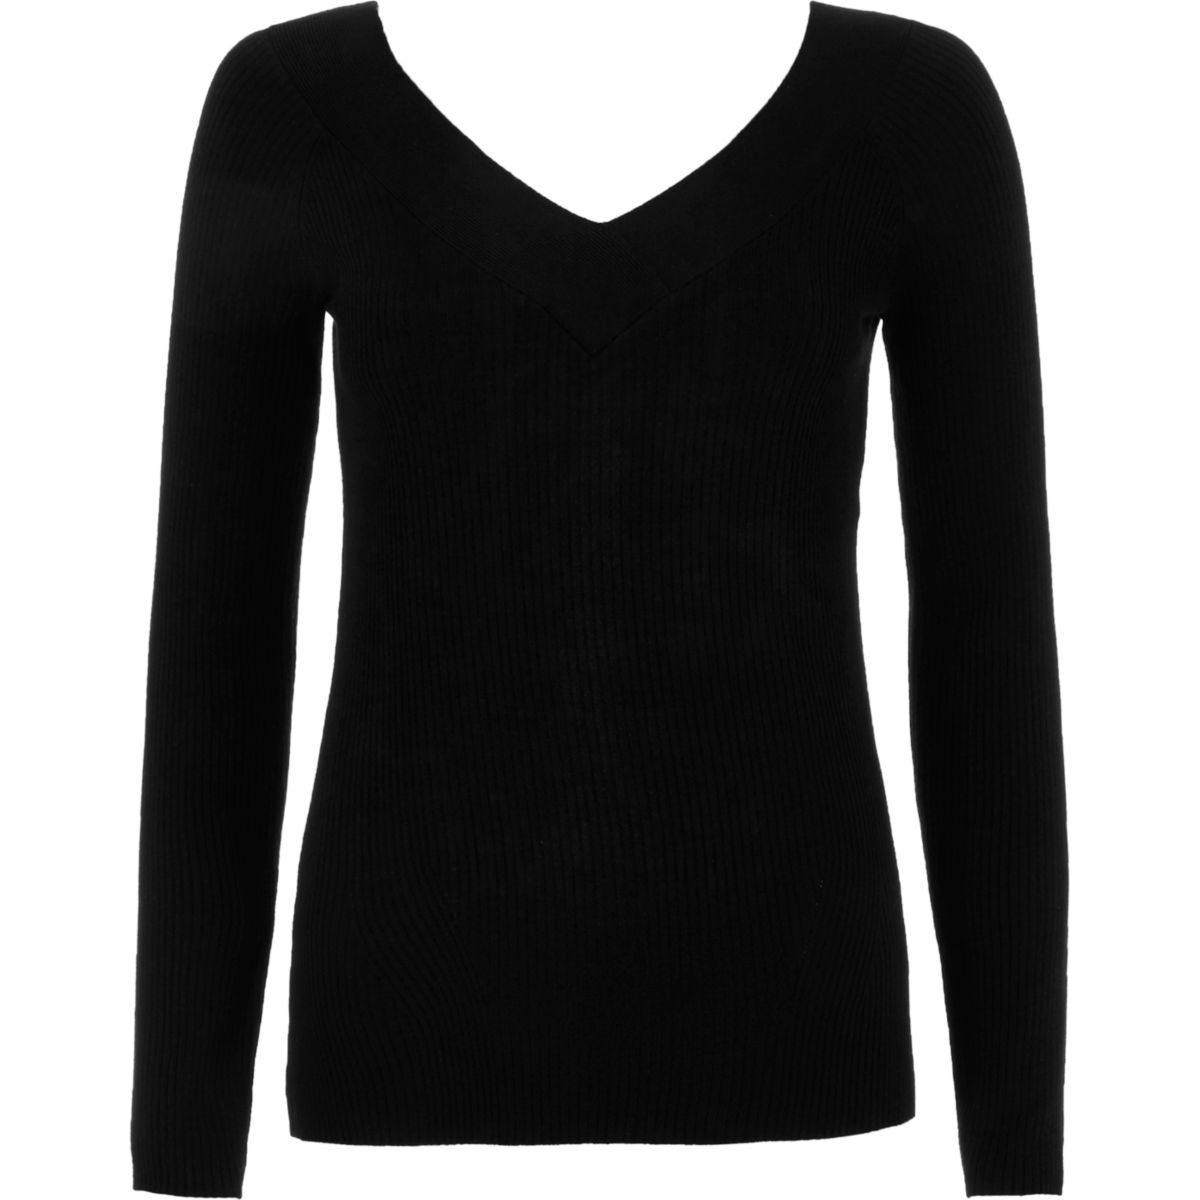 Black rib knit V neck top